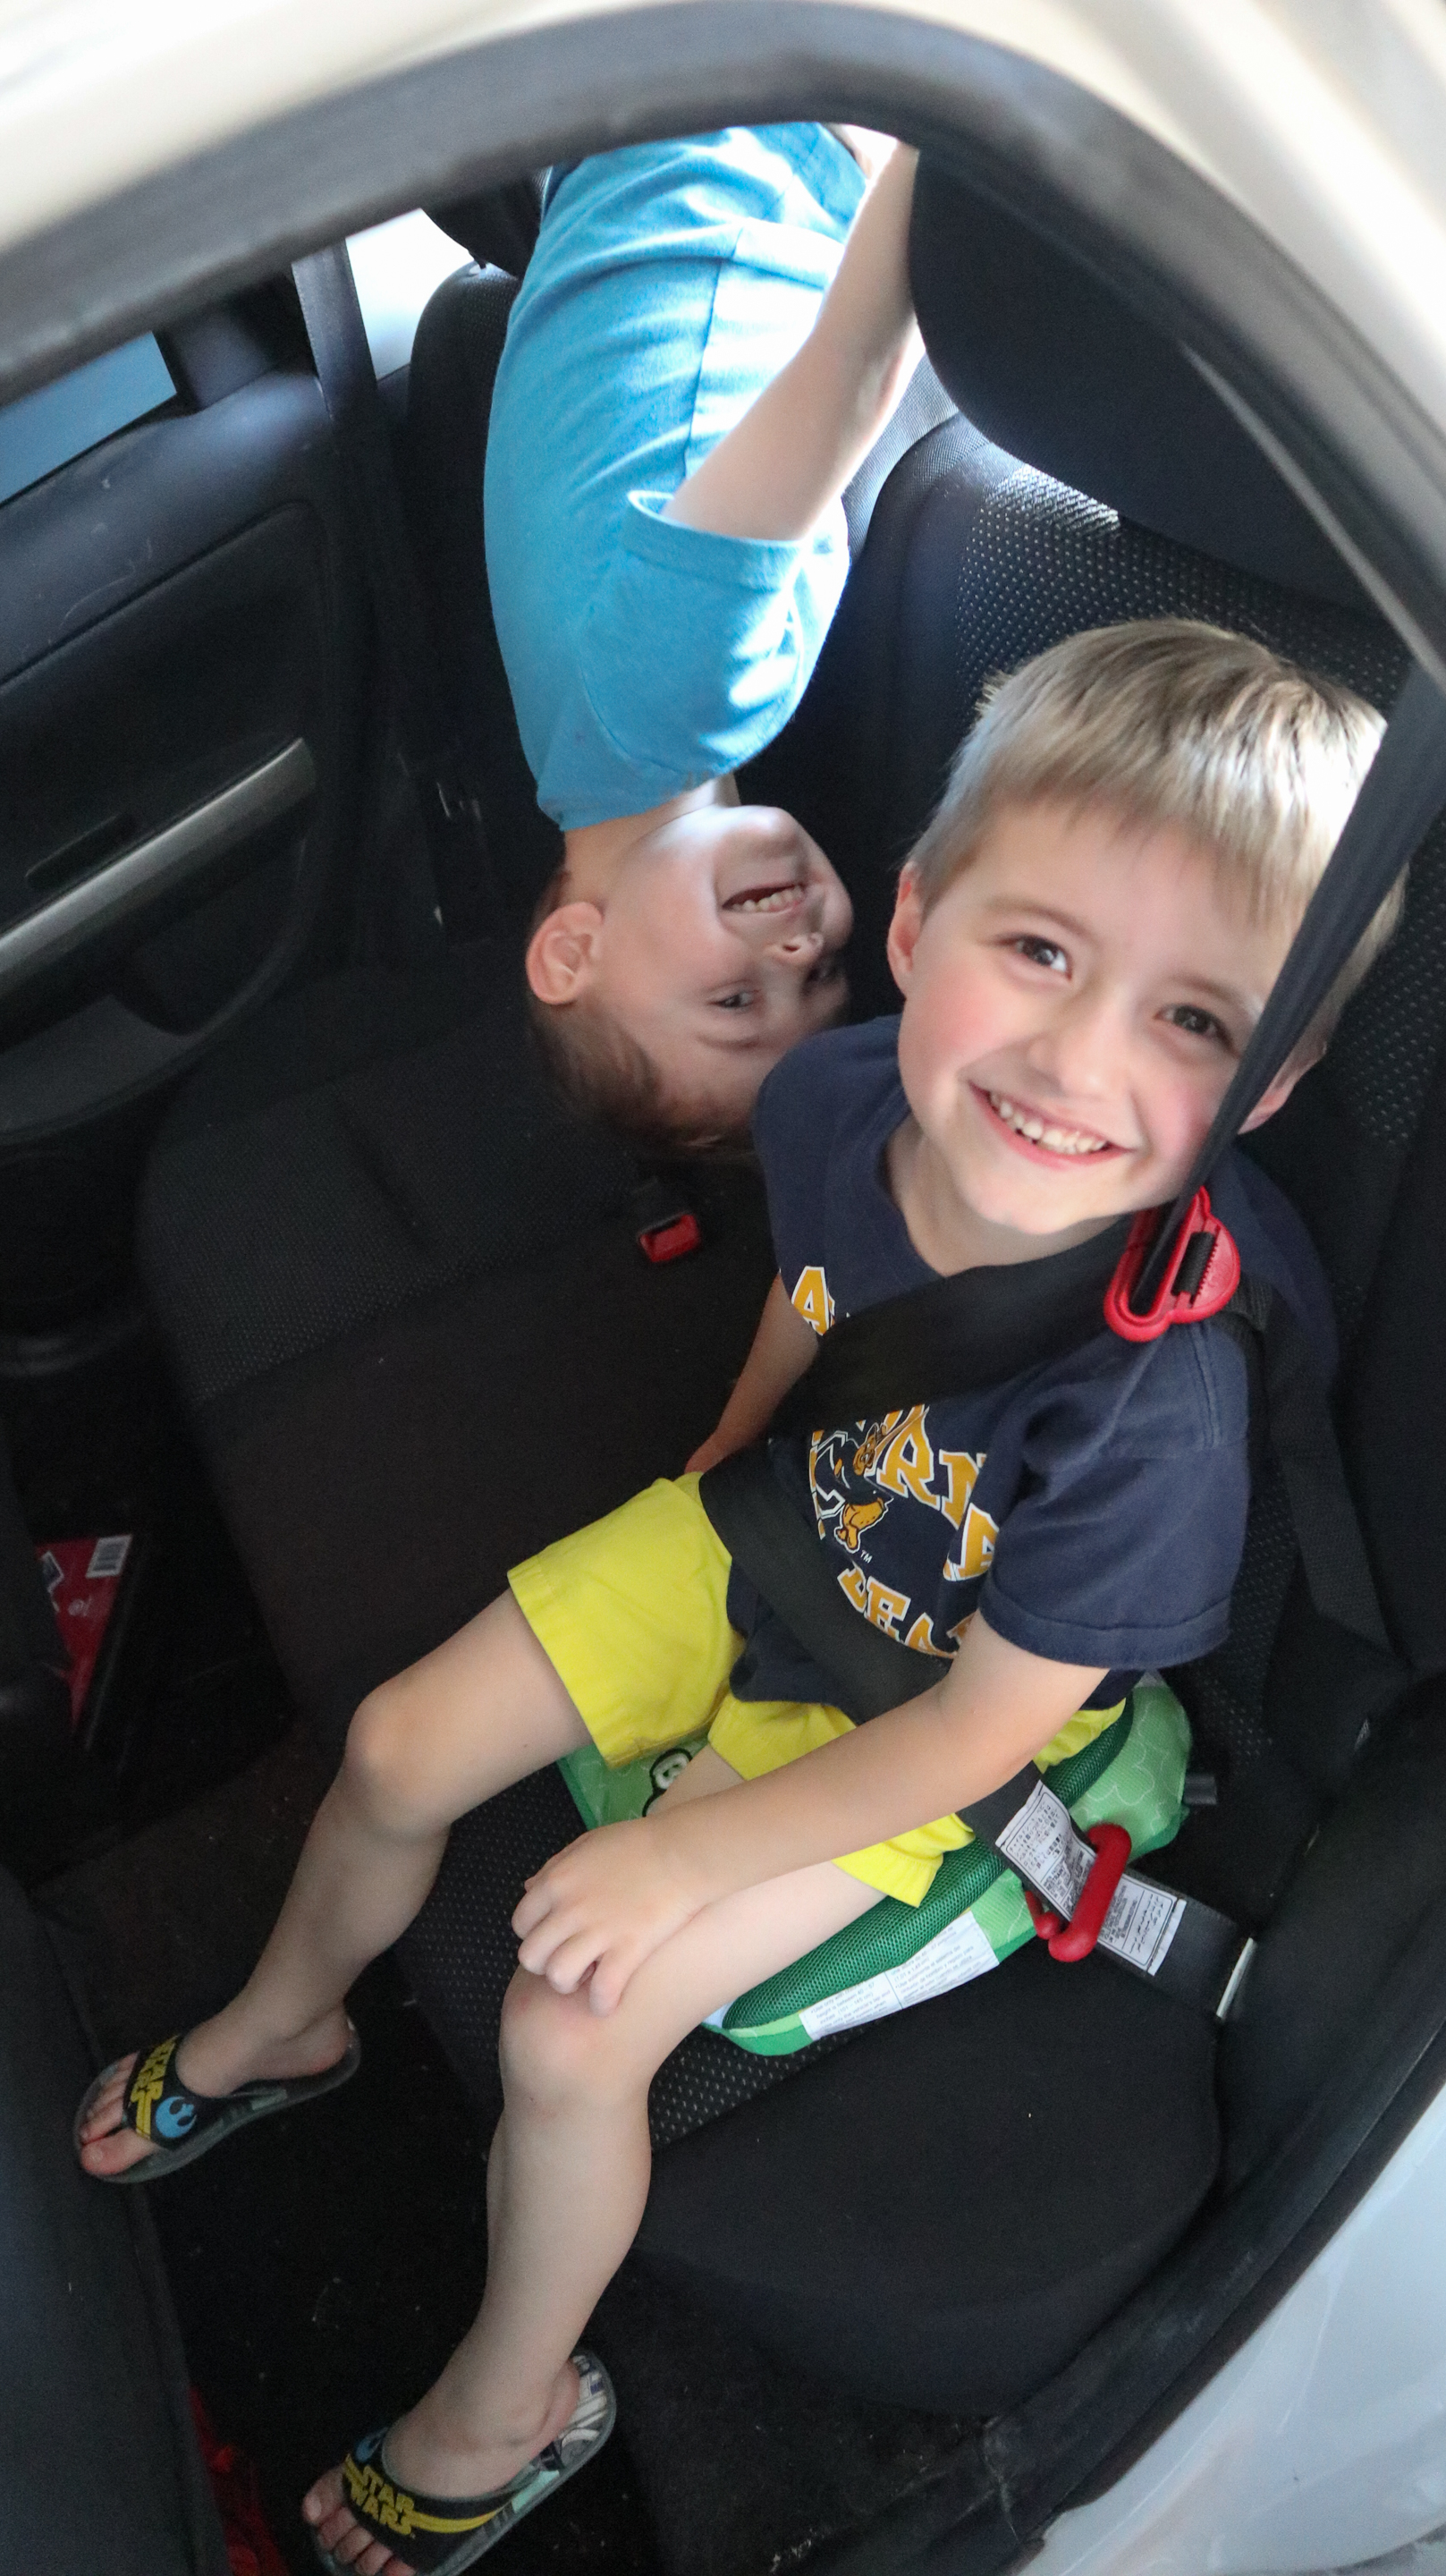 Smiling boys playing in the backseat of a car, testing out the Bubblebum travel car seat